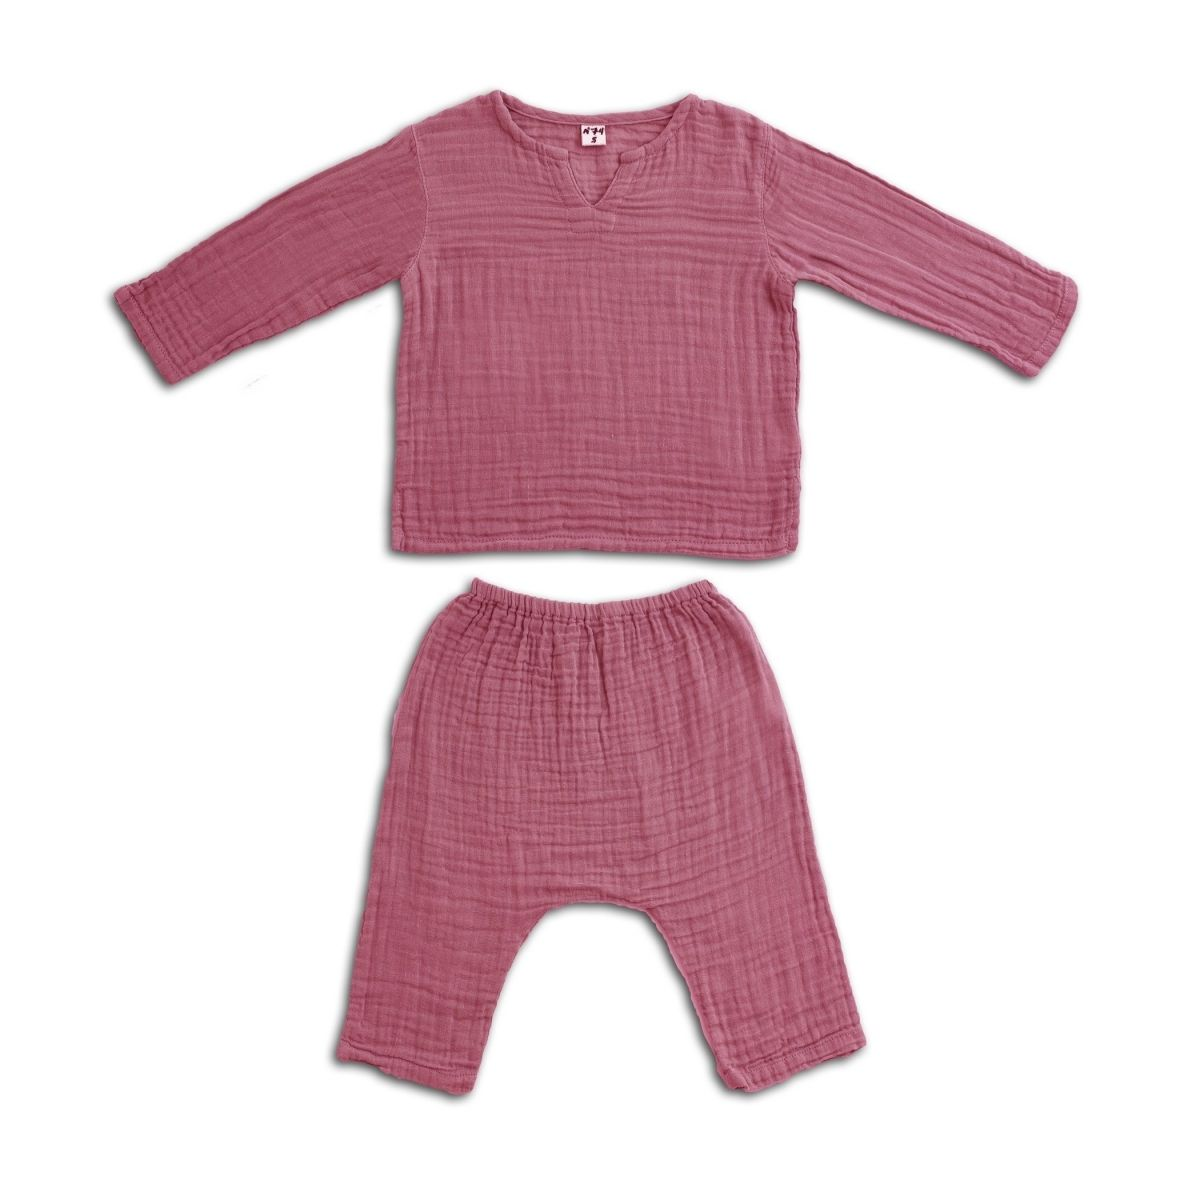 Suit Zac shirt & pants baobab rose - Numero 74